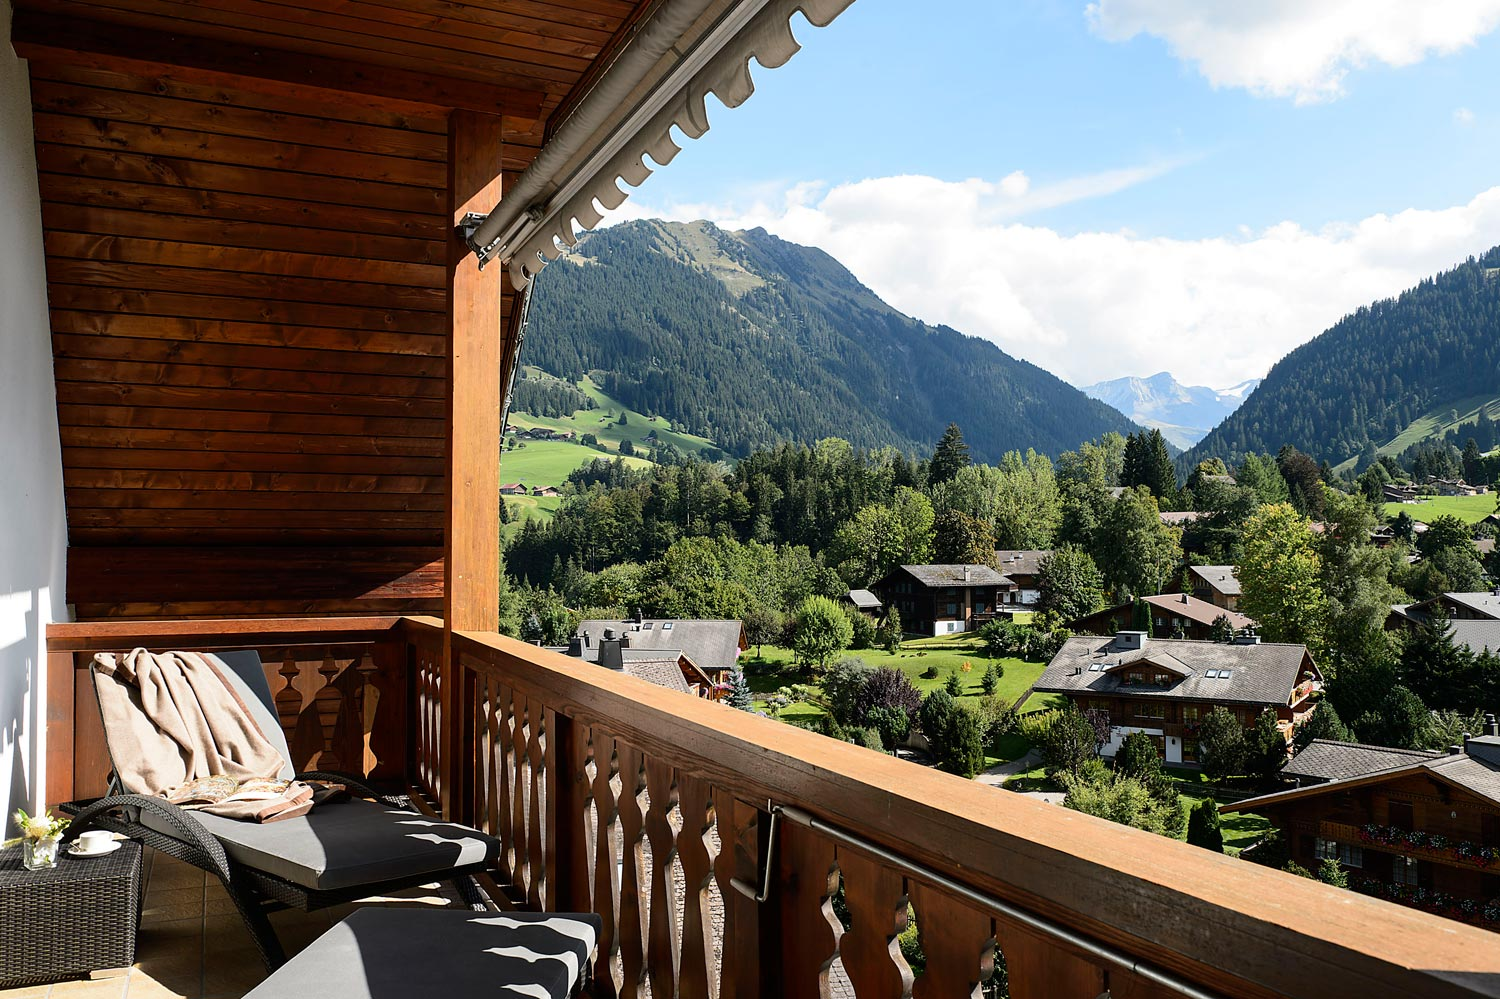 We Review Park Gstaad Hotel - 'The Last Paradise in a Crazy World' 7